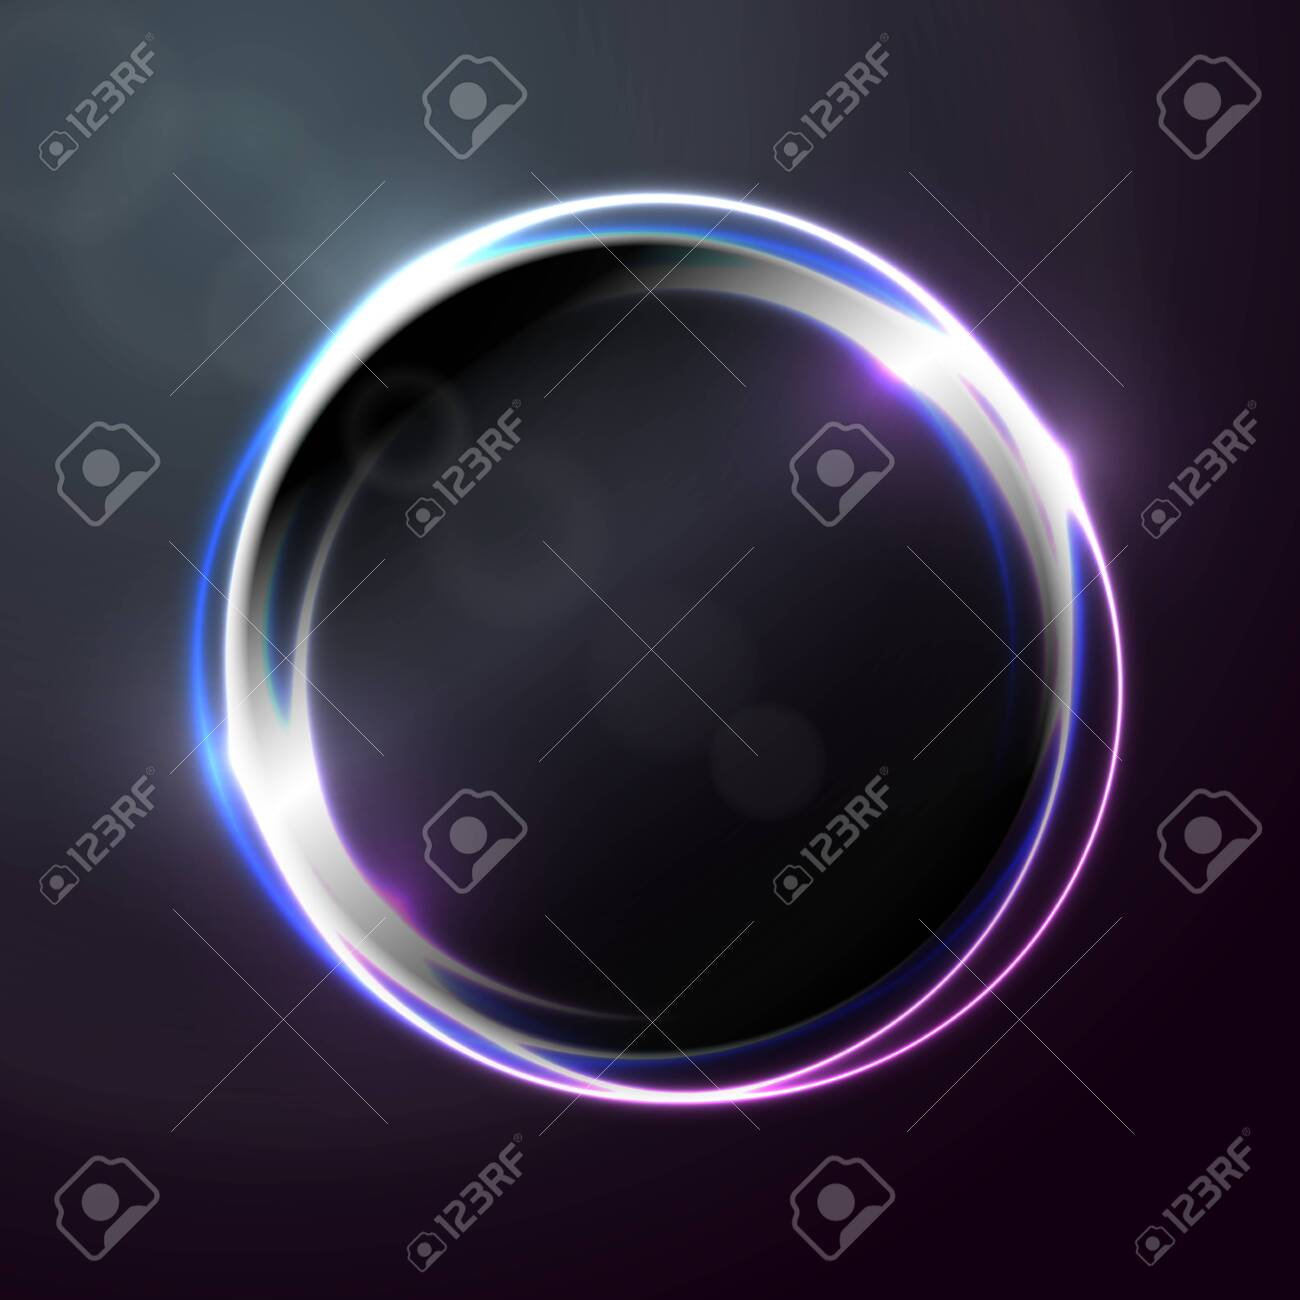 Vector abstract banner, poster design template with bright circle shape. - 128639791